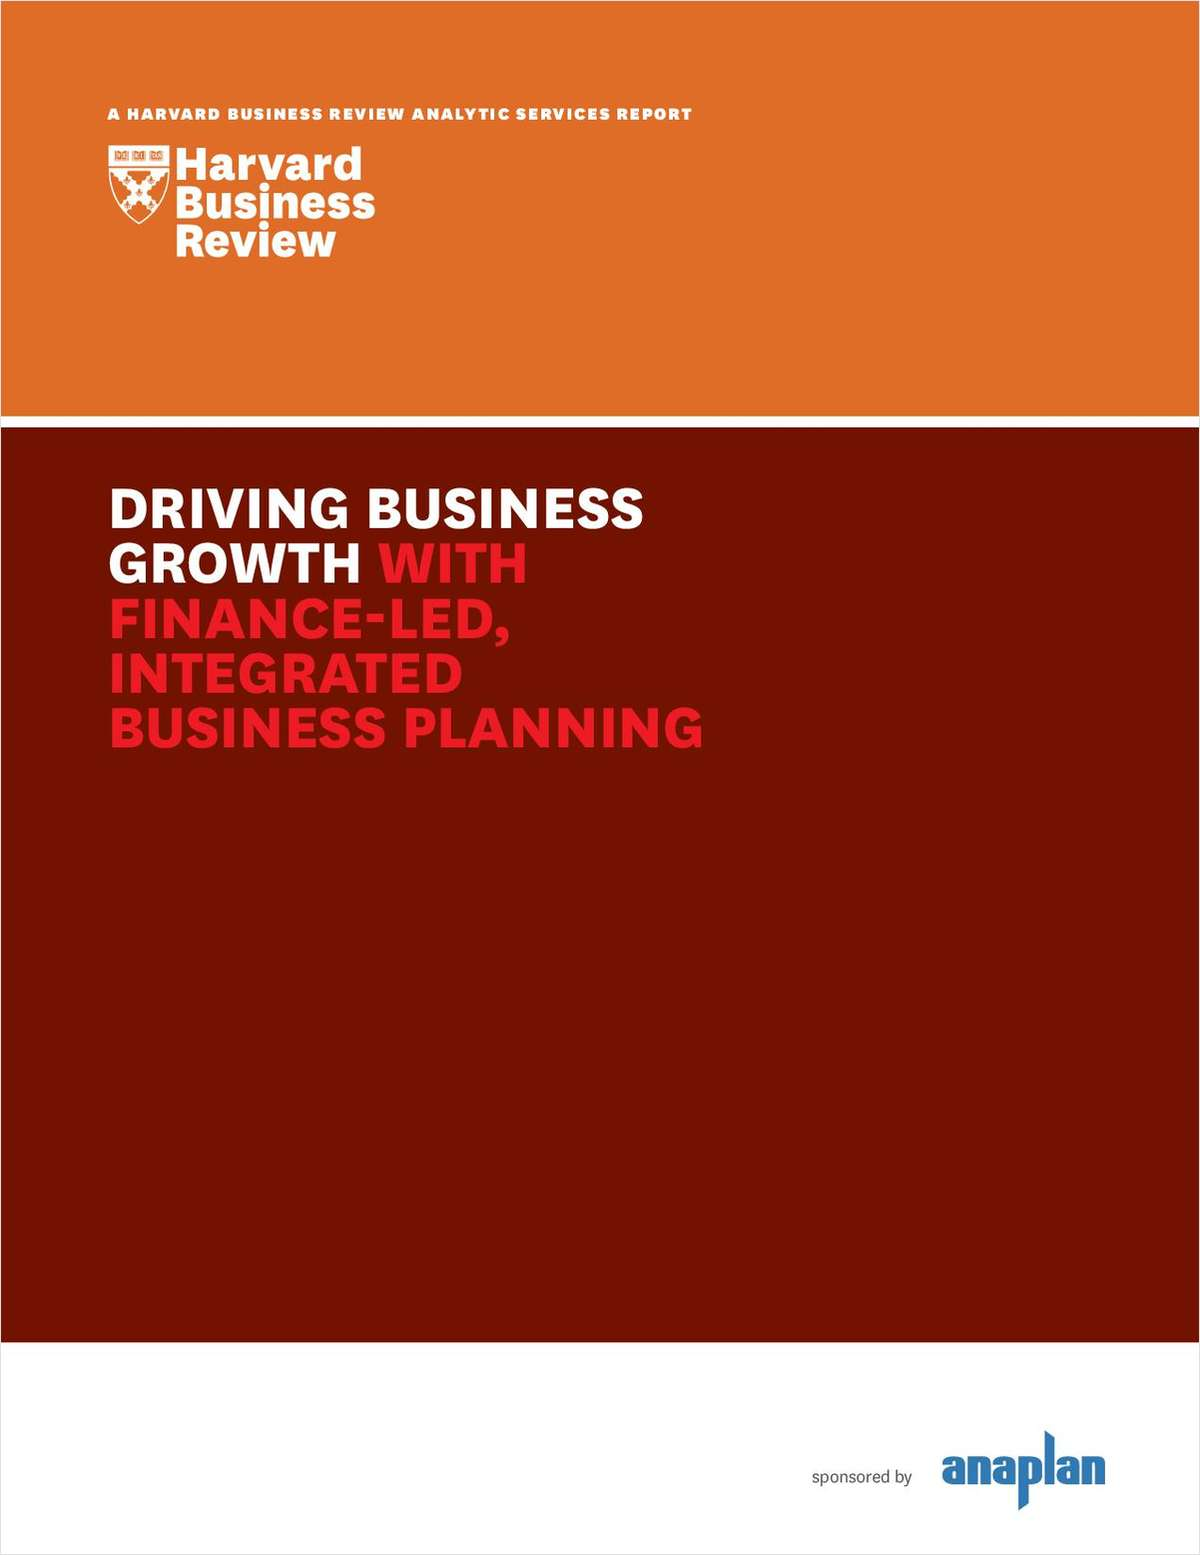 Harvard Business Review Report: Driving Business Growth with Finance-Led, Integrated Business Planning